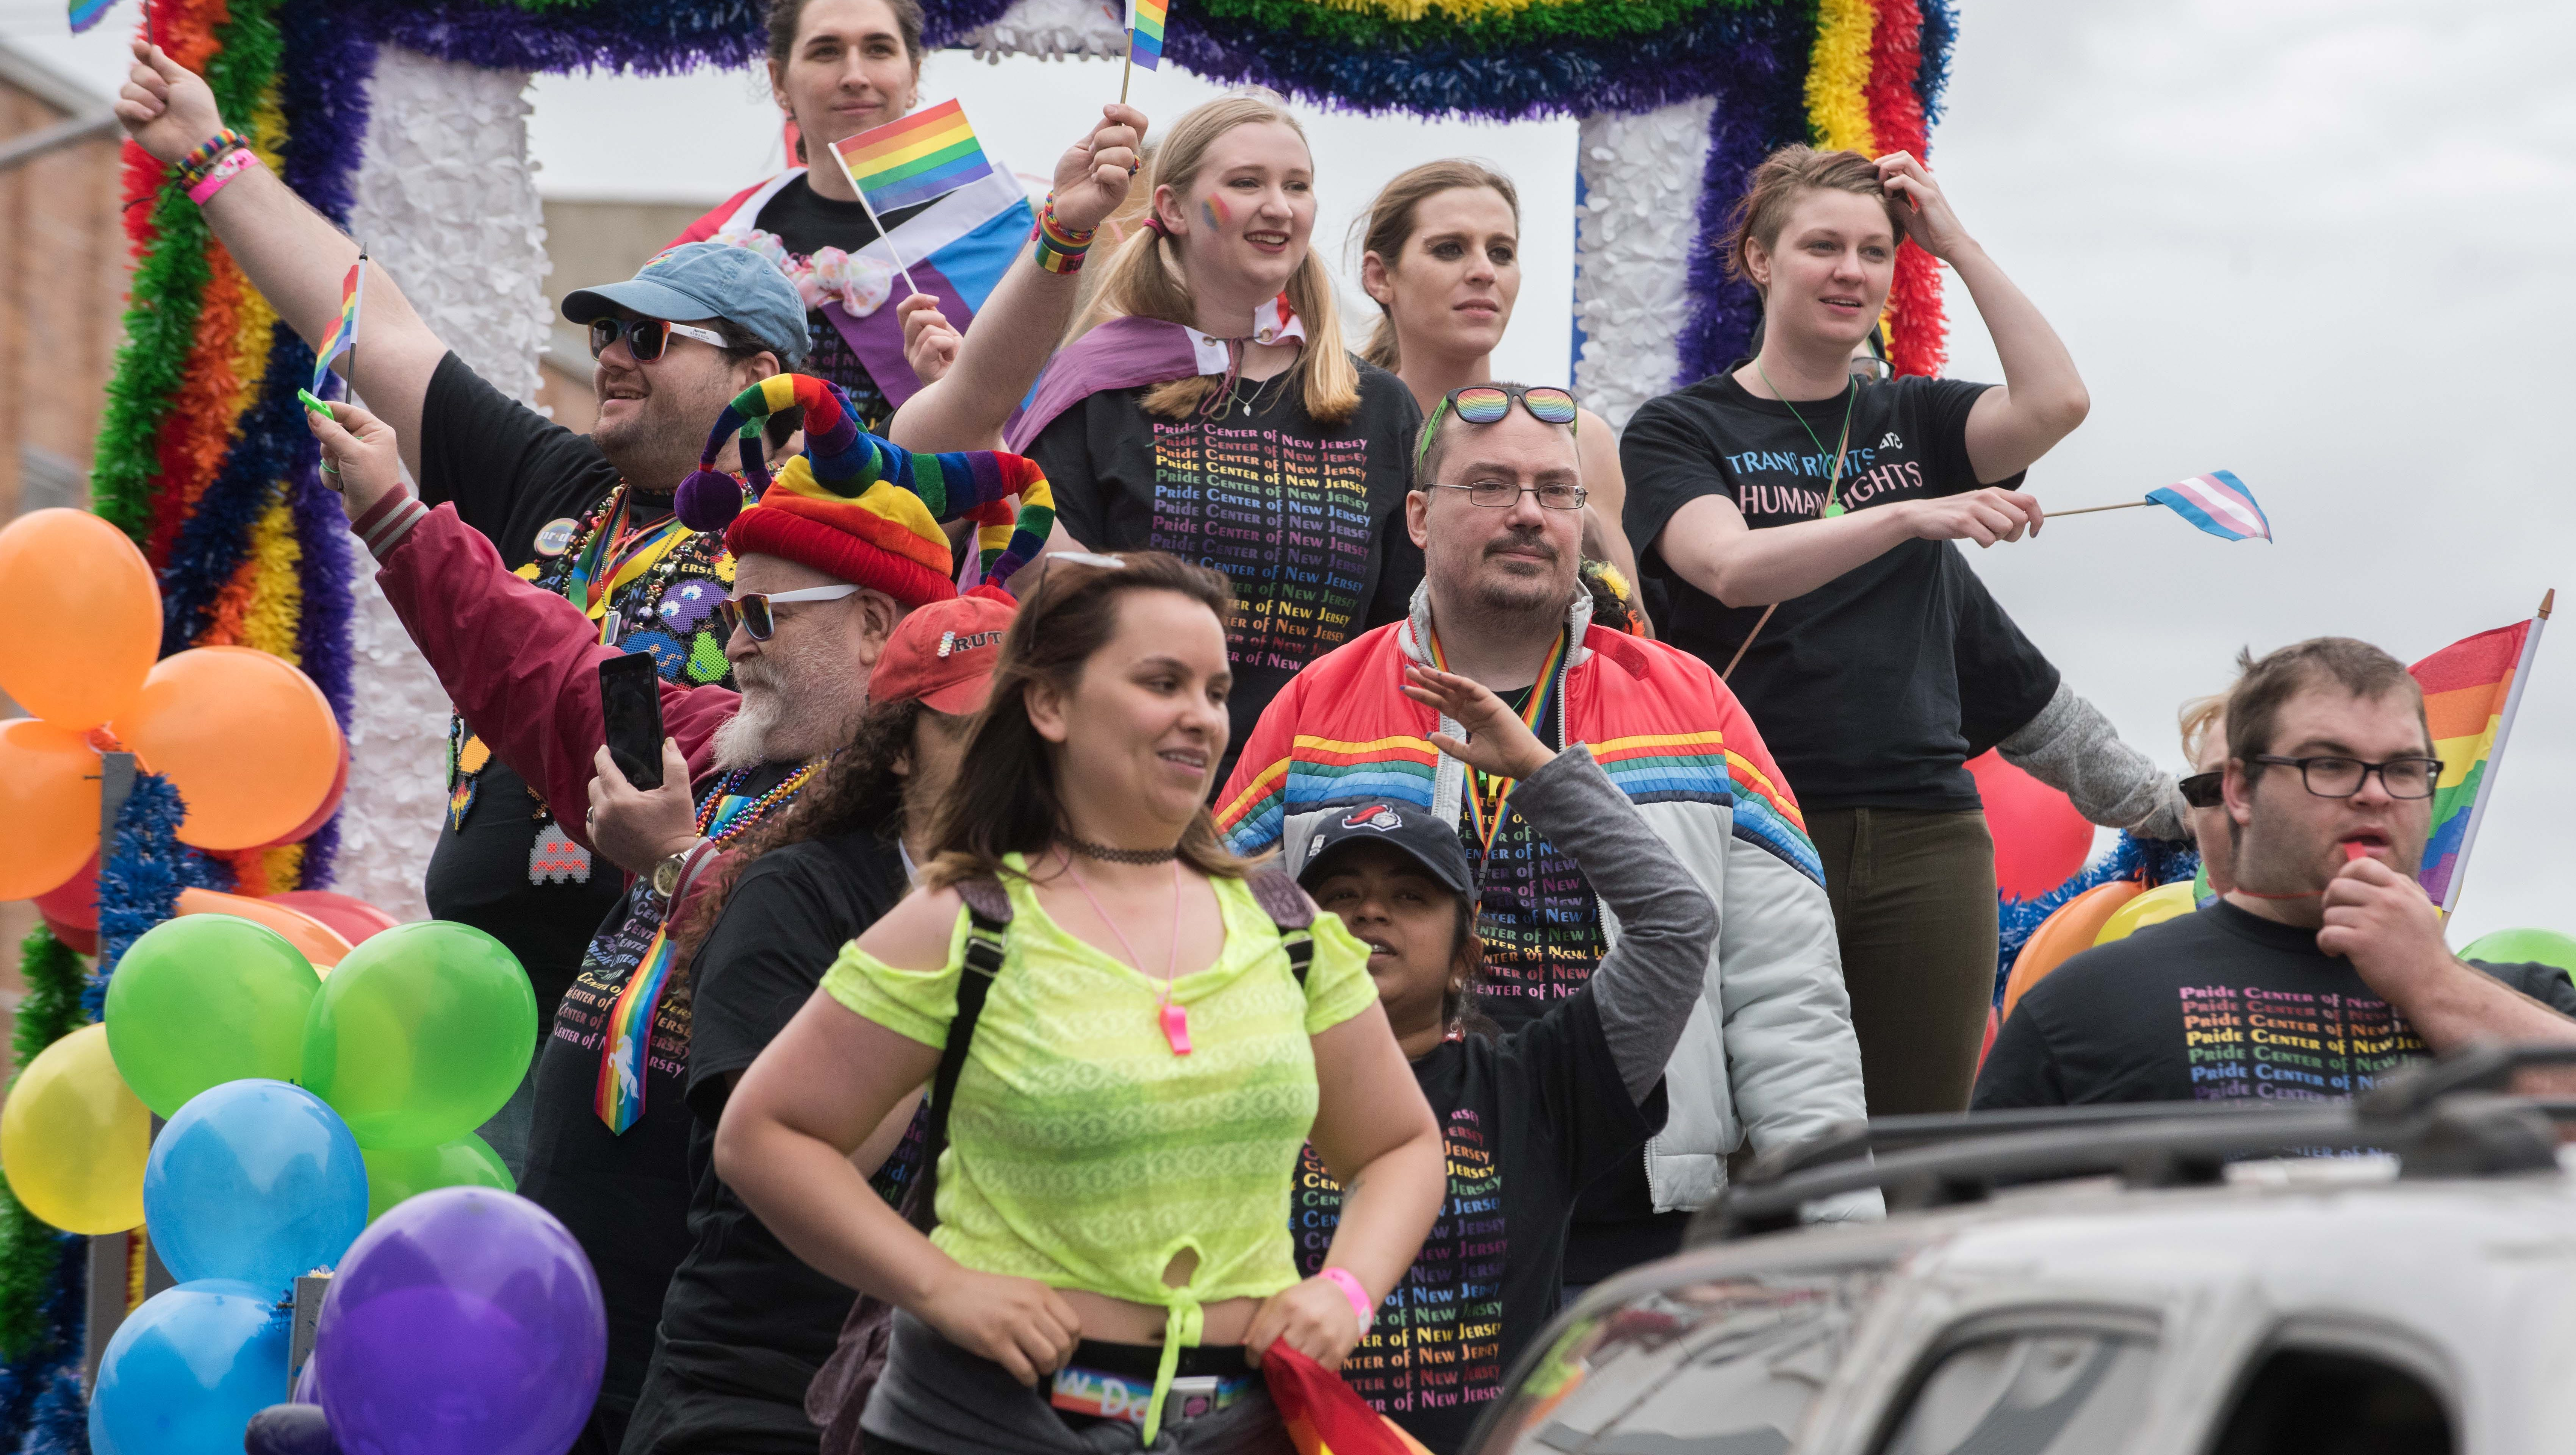 Jersey Pride 2020 festival in Asbury Park canceled due to COVID-19